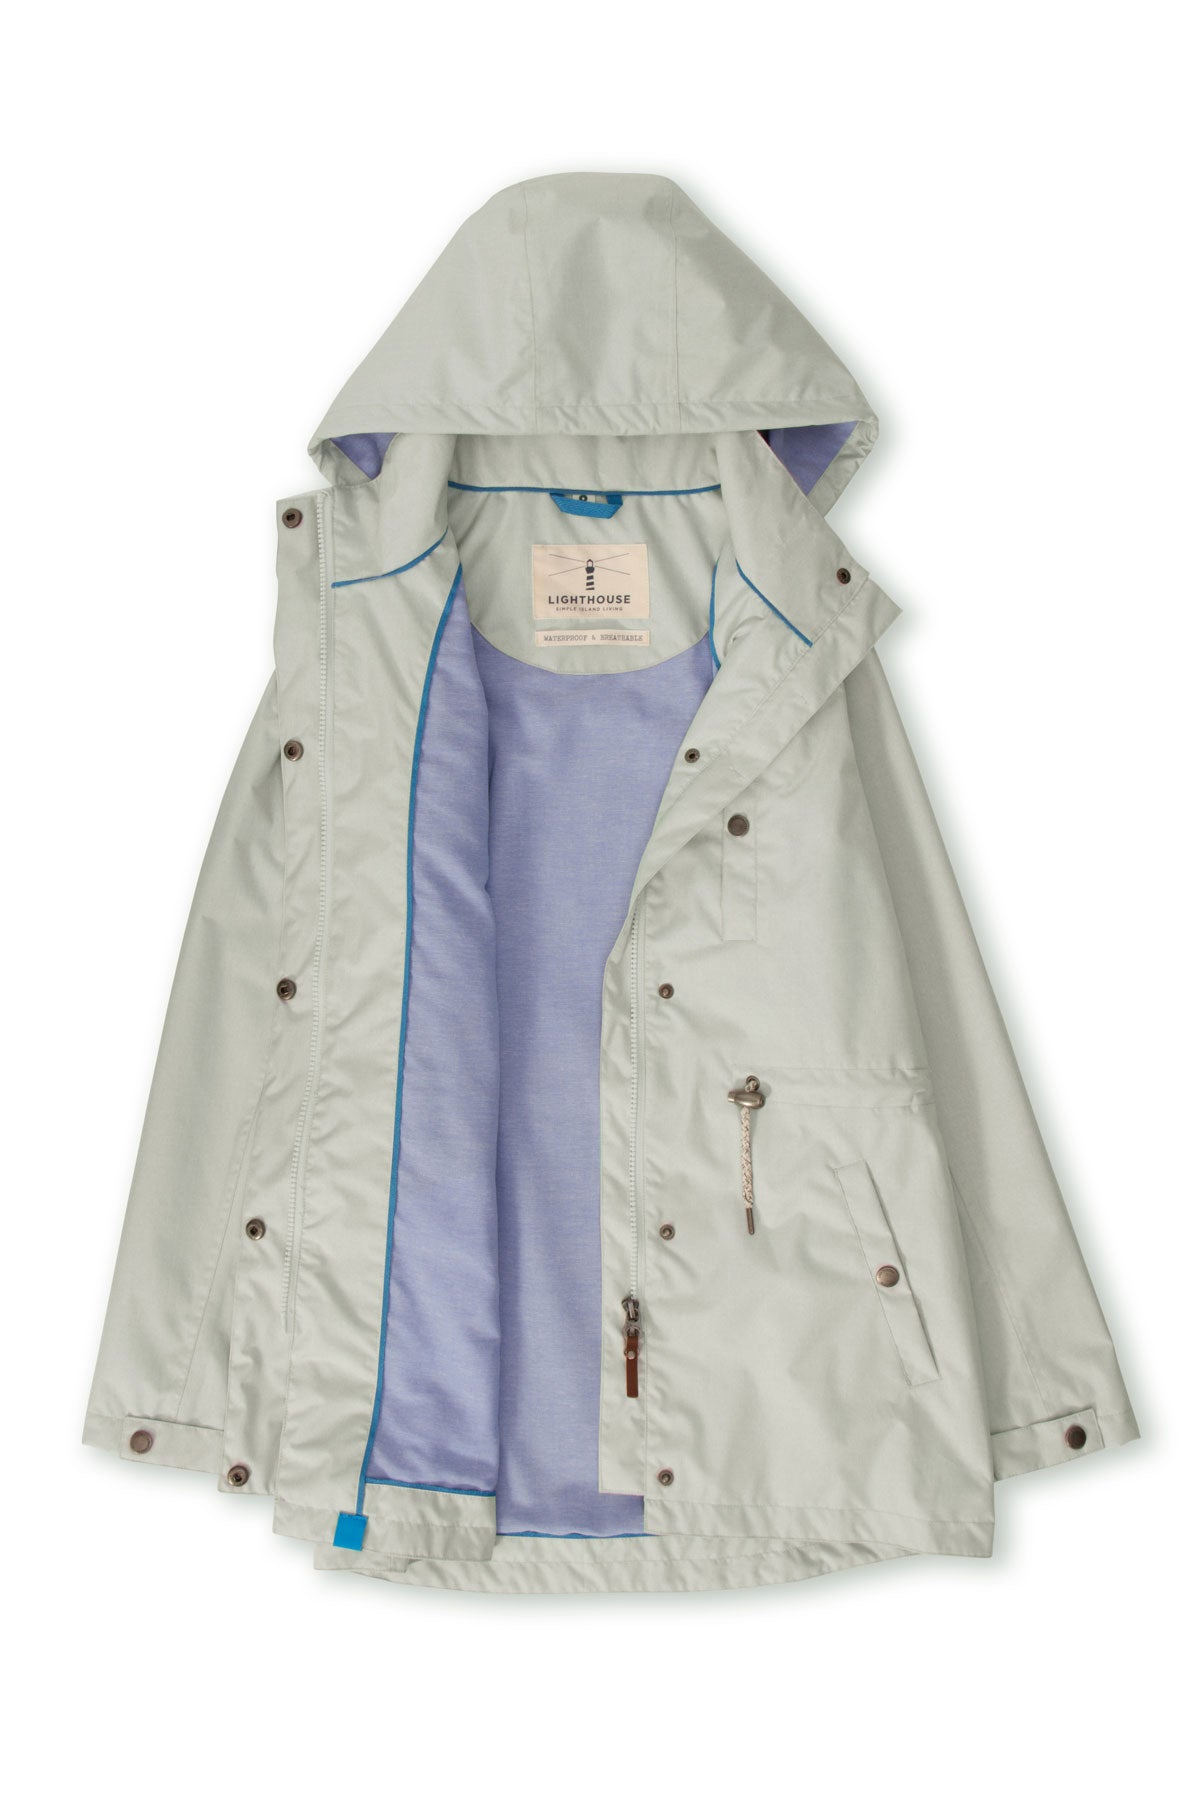 Lighthouse Fran Women's Waterproof Jacket - Harbour Mist